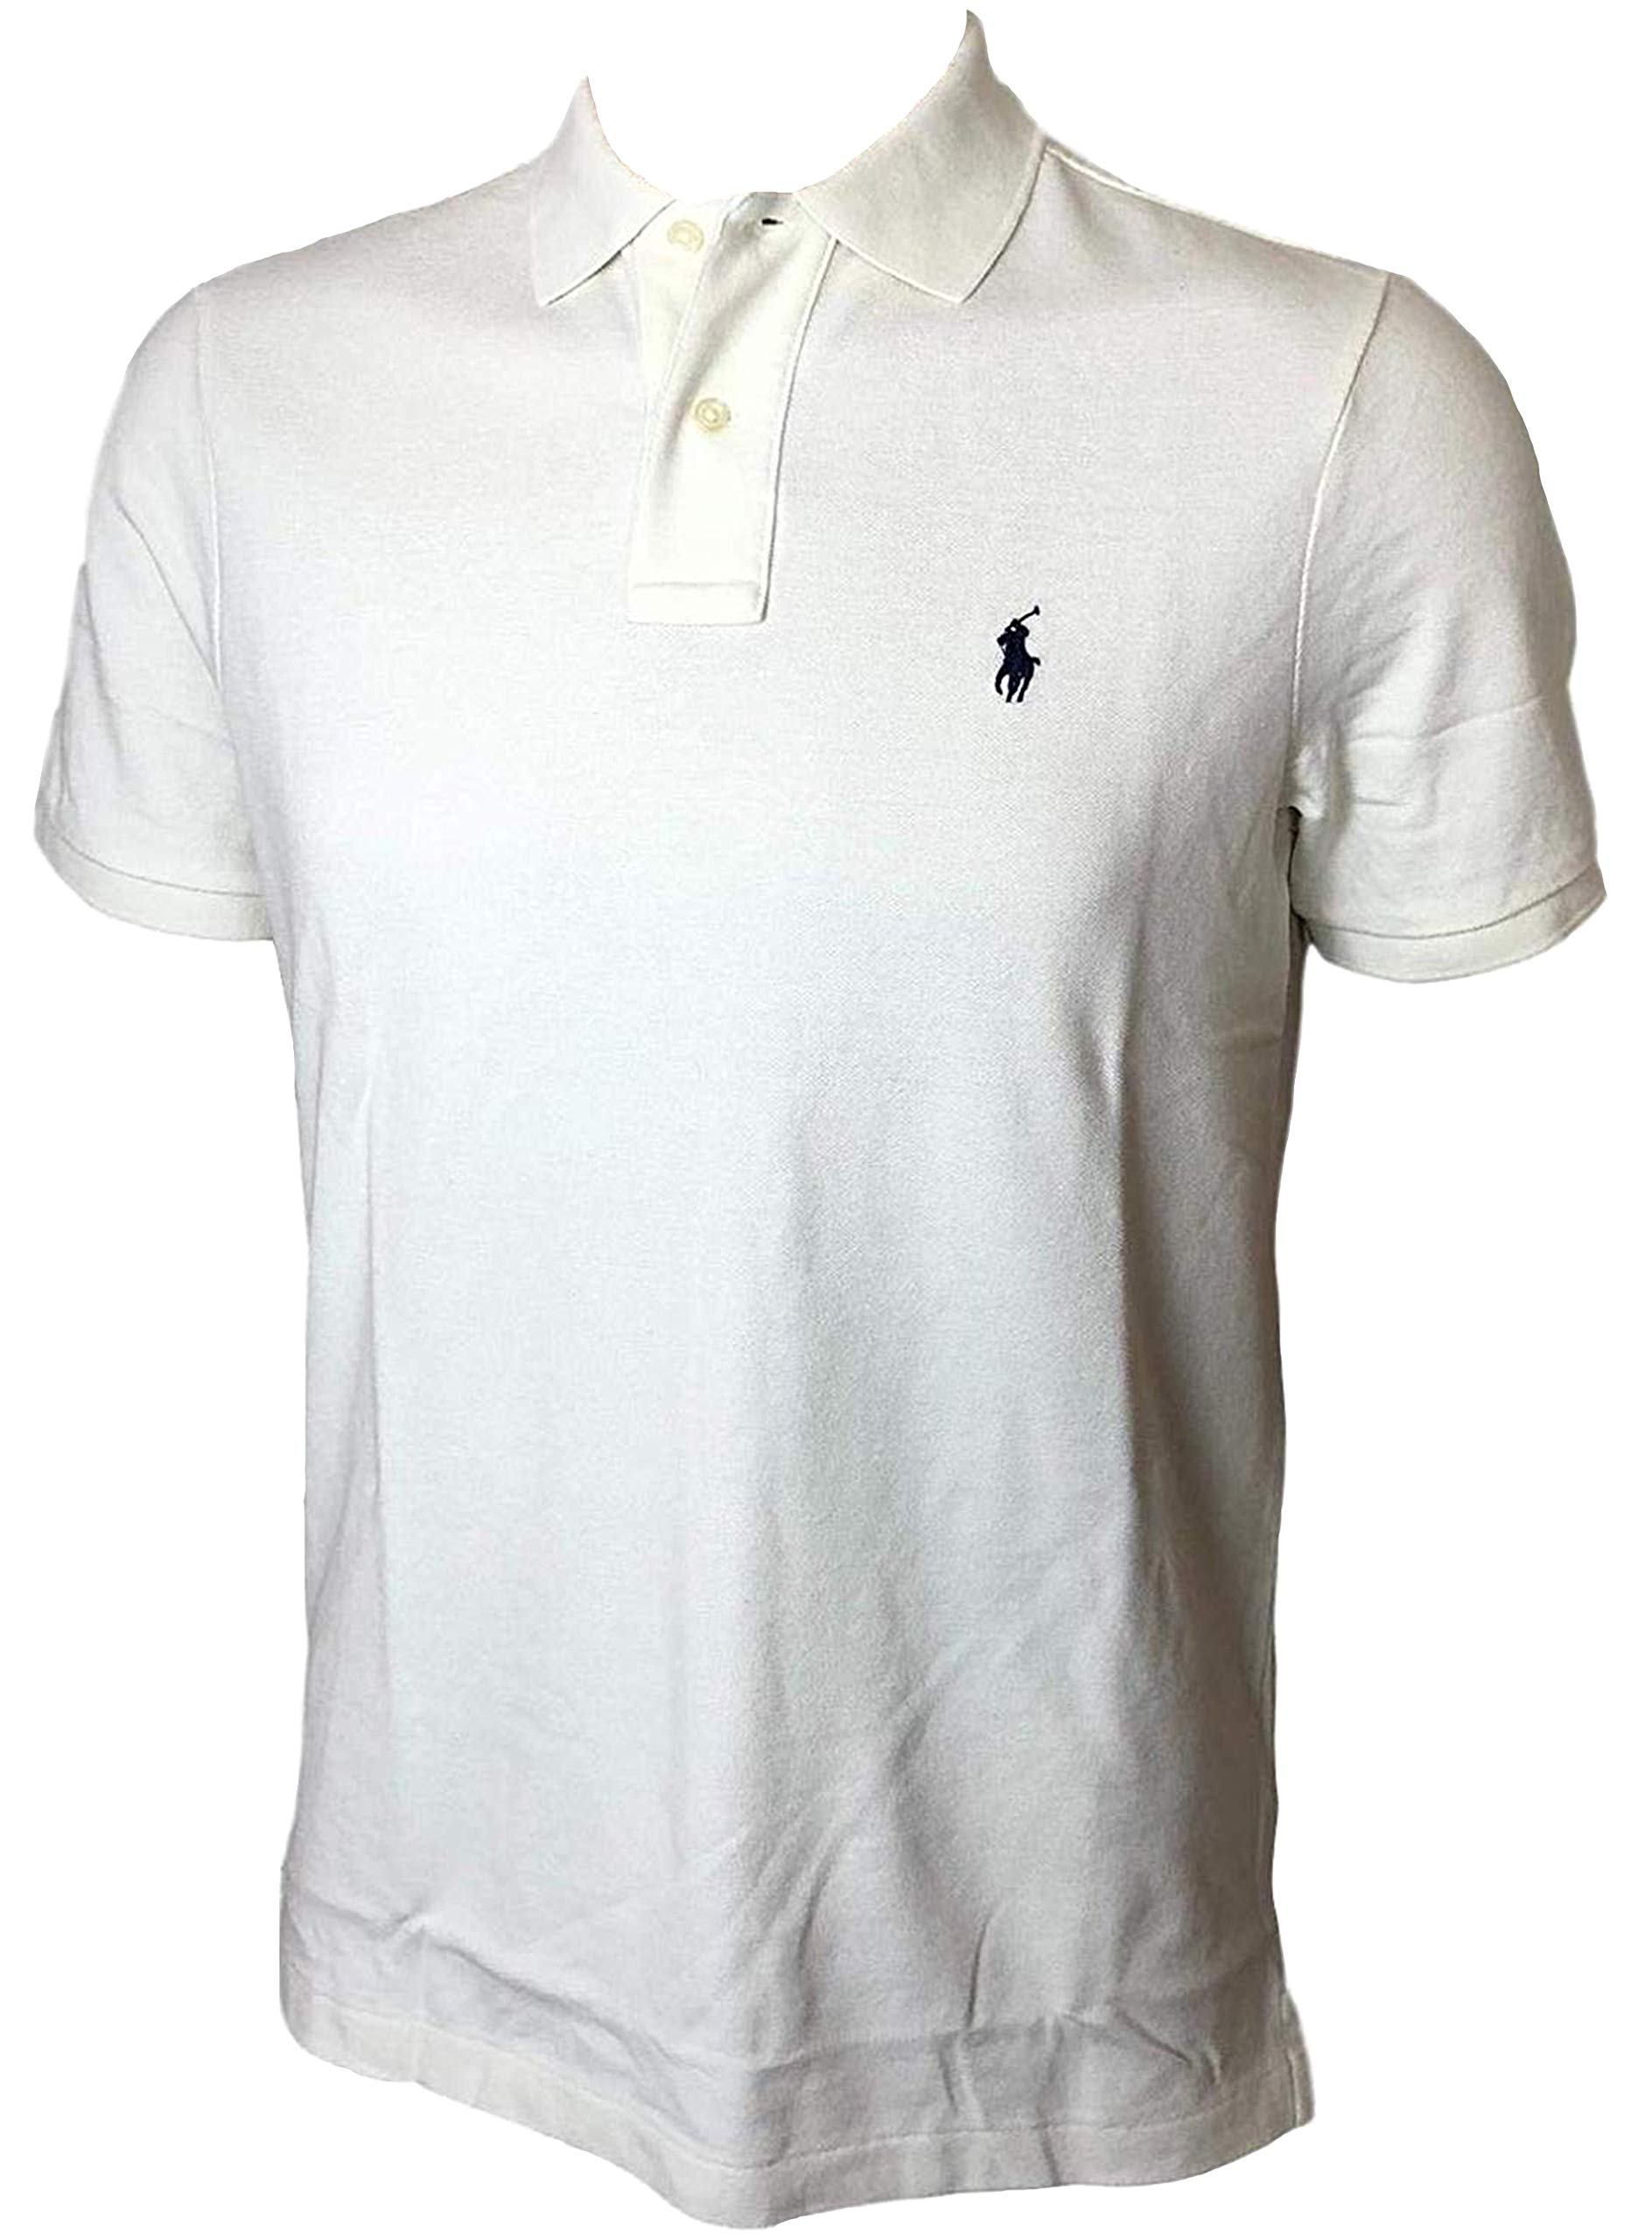 Polo Ralph Lauren Classic Fit Mesh Pony Logo Polo Shirt (S, ChicCream)